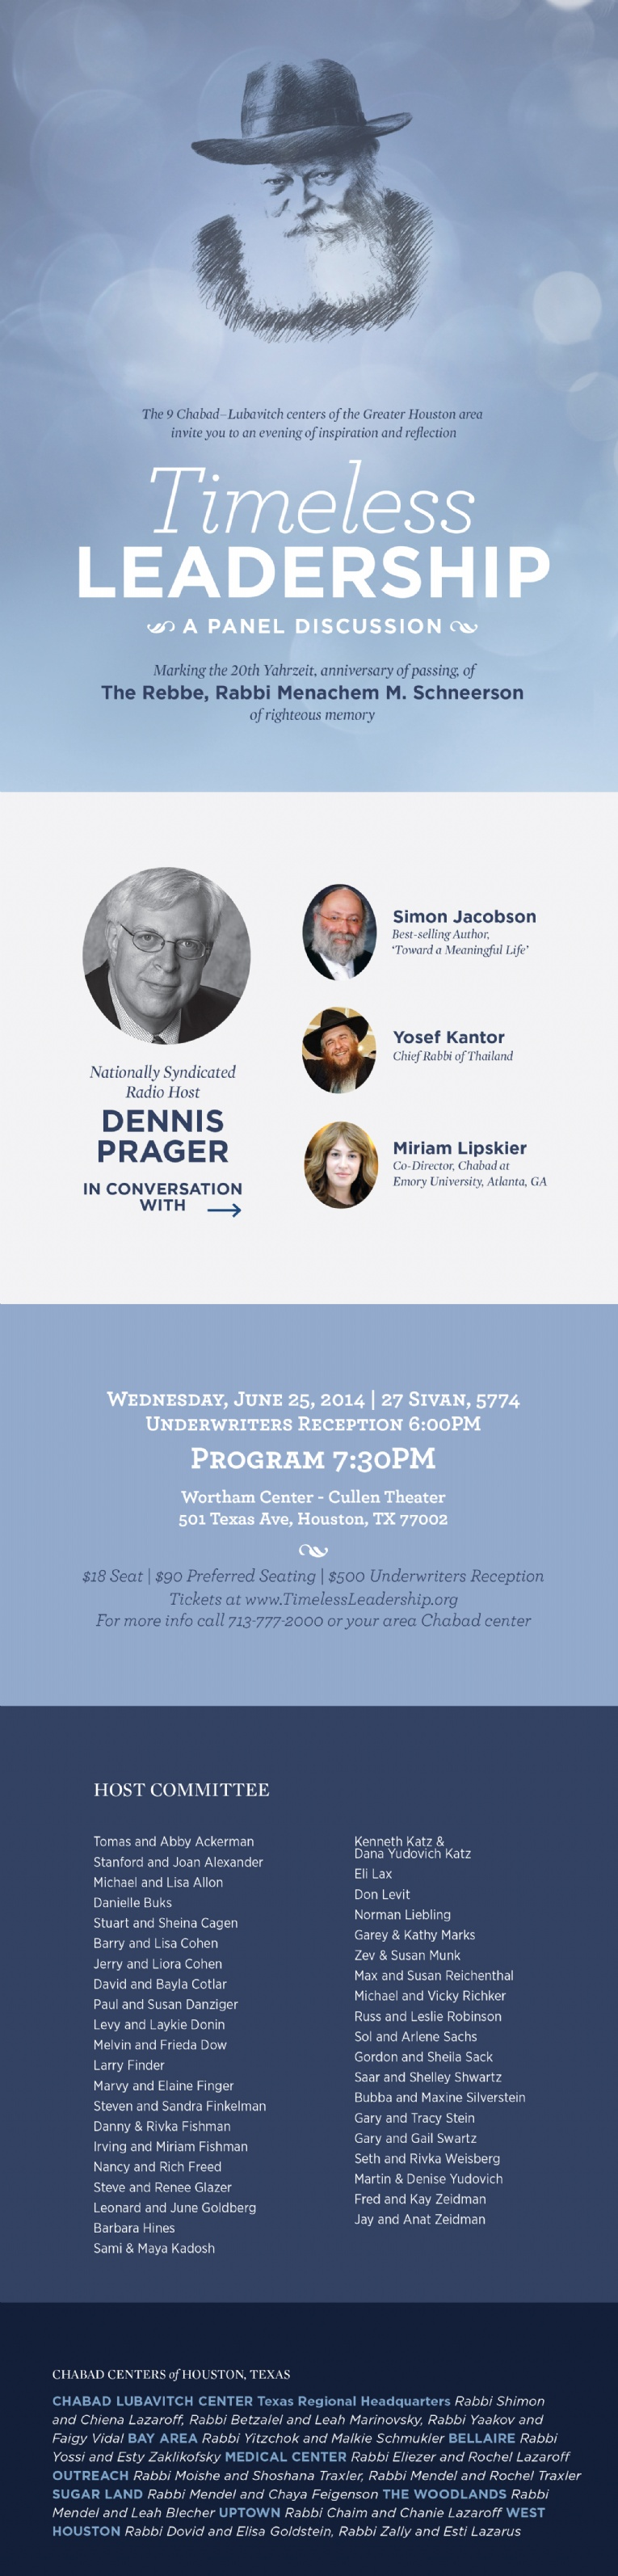 3 Tamuz Gimmel Tammuz - 6-25-14 | Eve of inspiration and reflection with Radio Host Dennis Prager, Simon Jacobson, Yosef Kantor, Miriam Lipskier